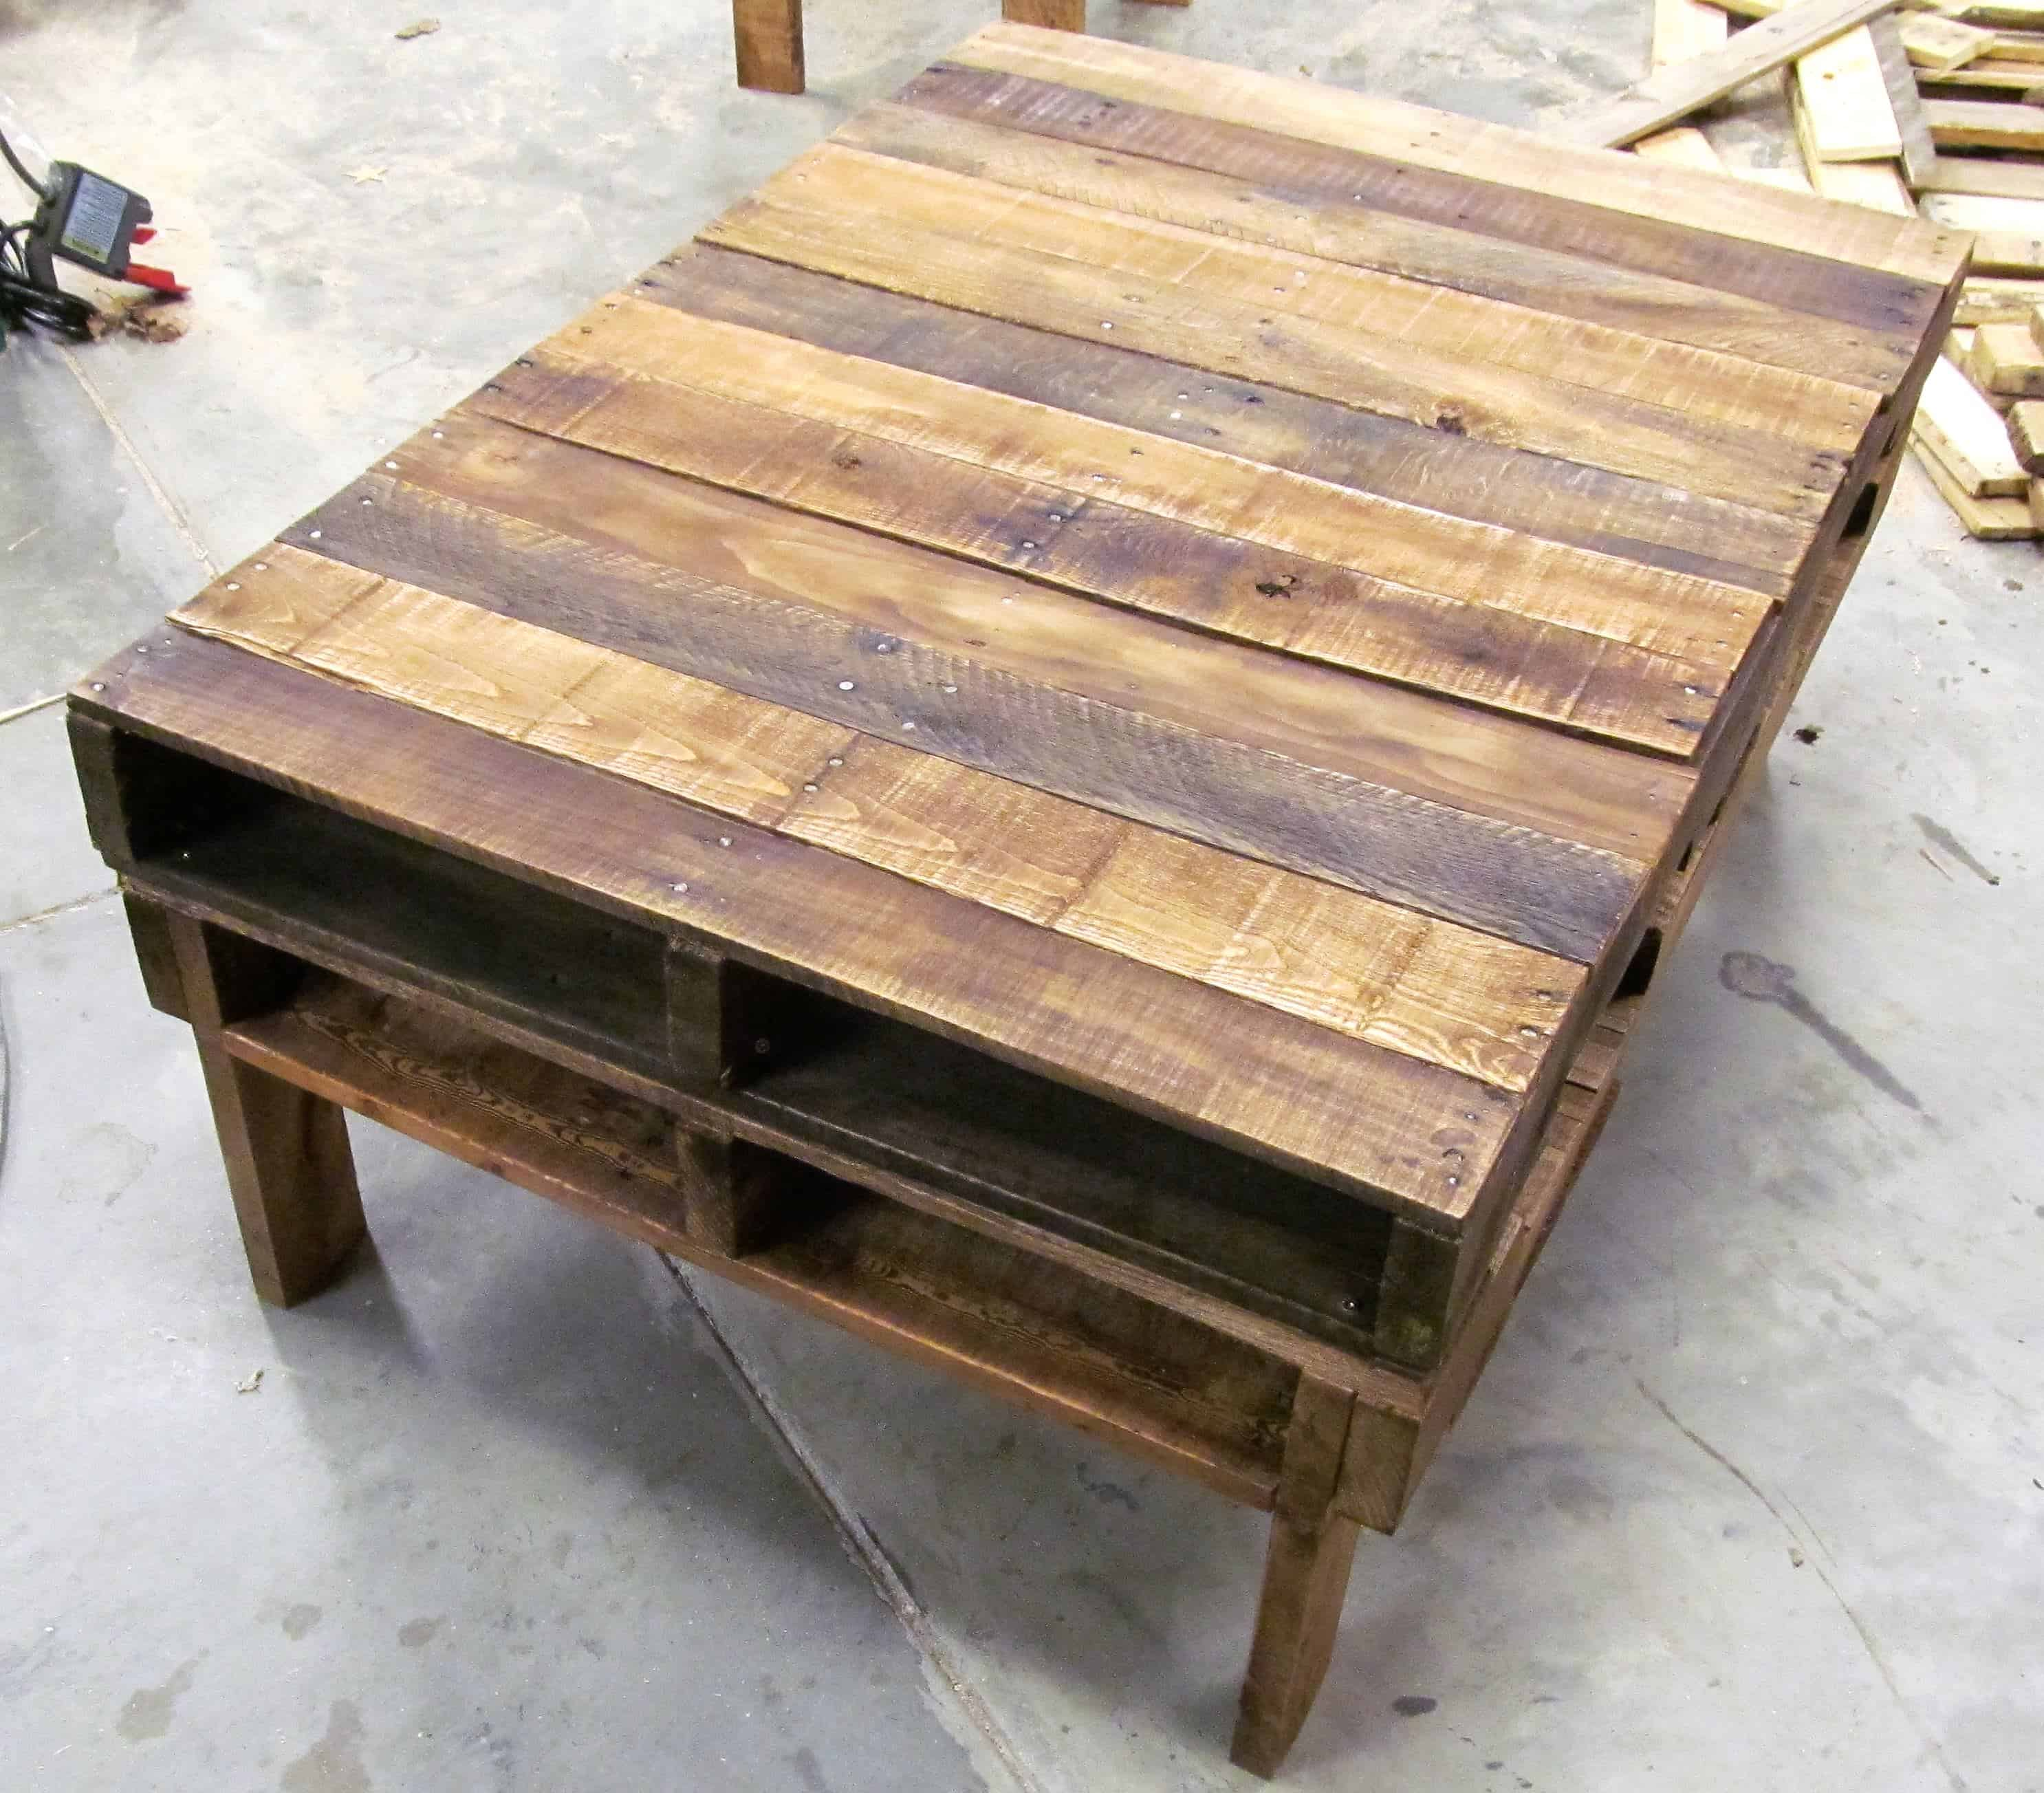 two-pallet rustic pallet coffee table • pallet ideas • 1001 pallets